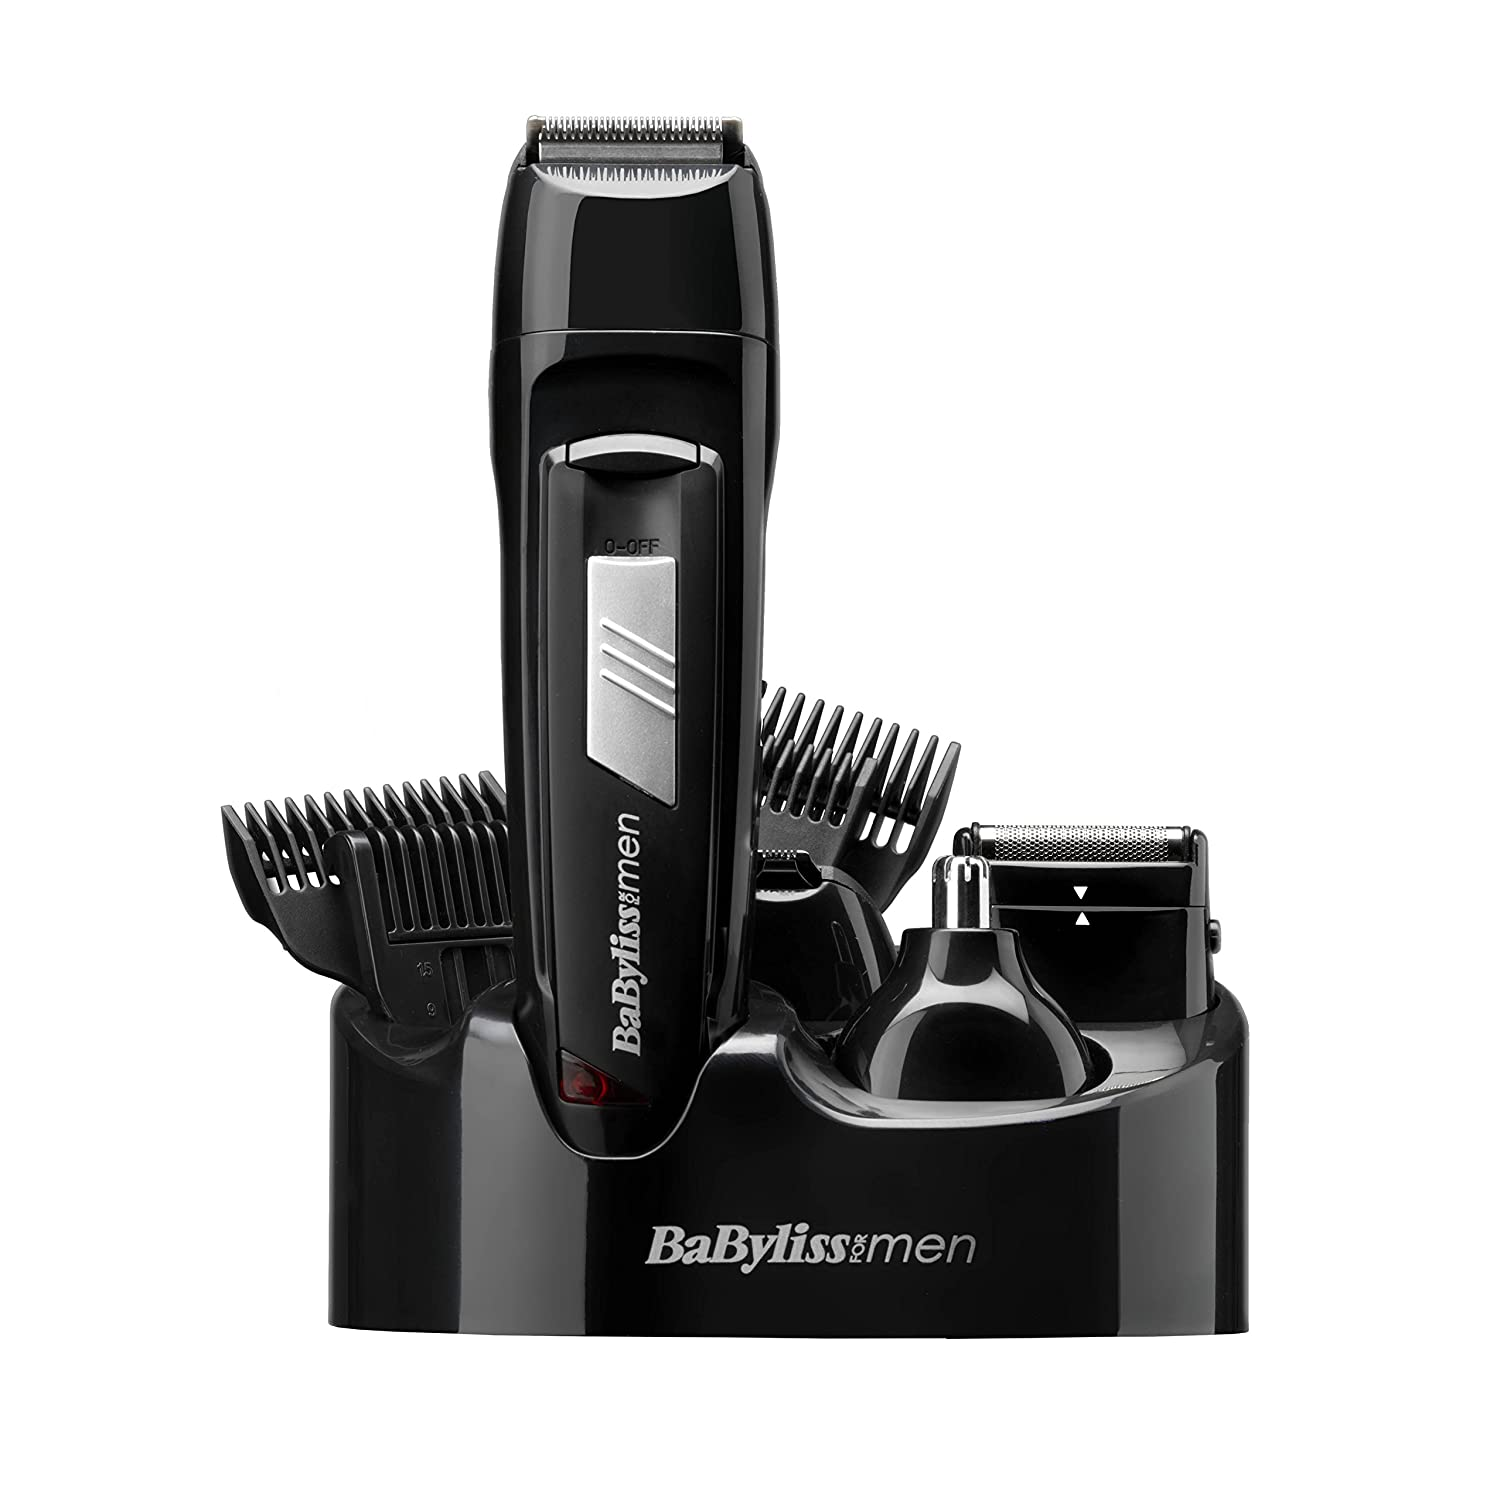 Babyliss 7056CU Cordless Rechargeable 8 In 1 All Over Grooming Kit The Conair Group Ltd